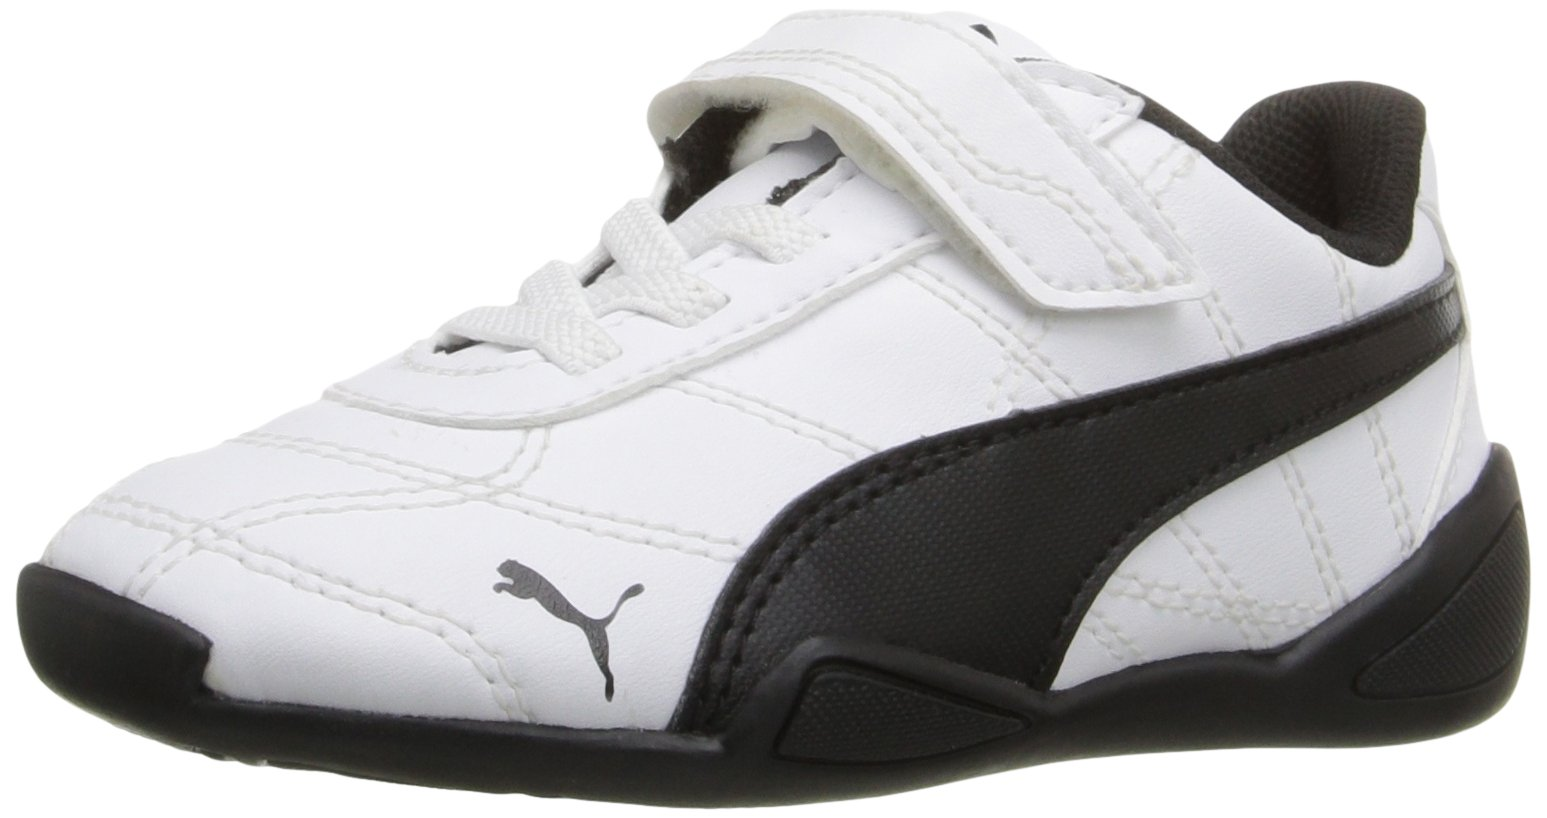 PUMA Boys' Tune CAT 3 V INF Sneaker White Black, 7 M US Toddler by PUMA